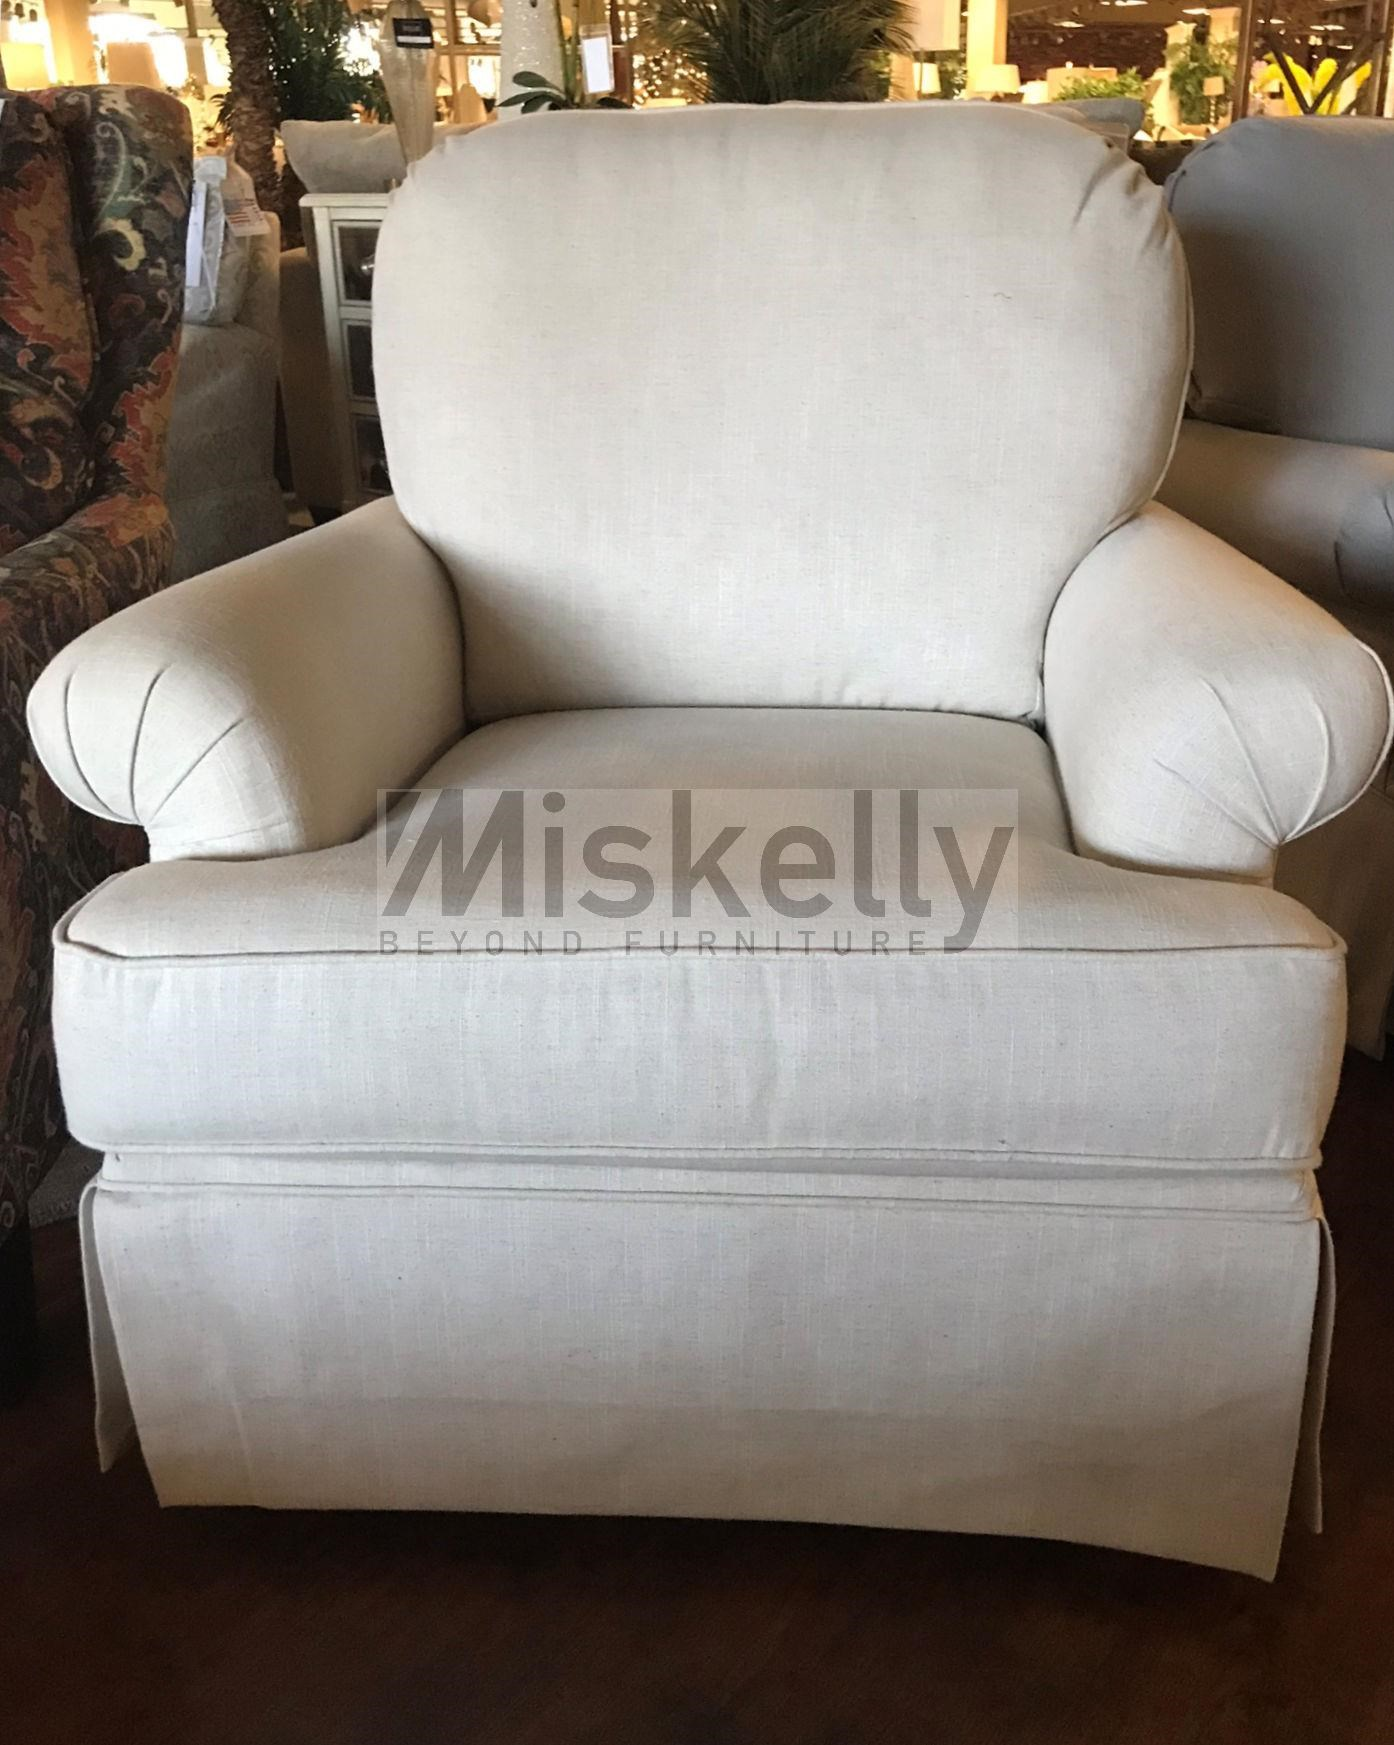 America Accent Chairs.Accent Chairs And Ottomans Swivel Glider With Skirted Base By Chairs America At Miskelly Furniture